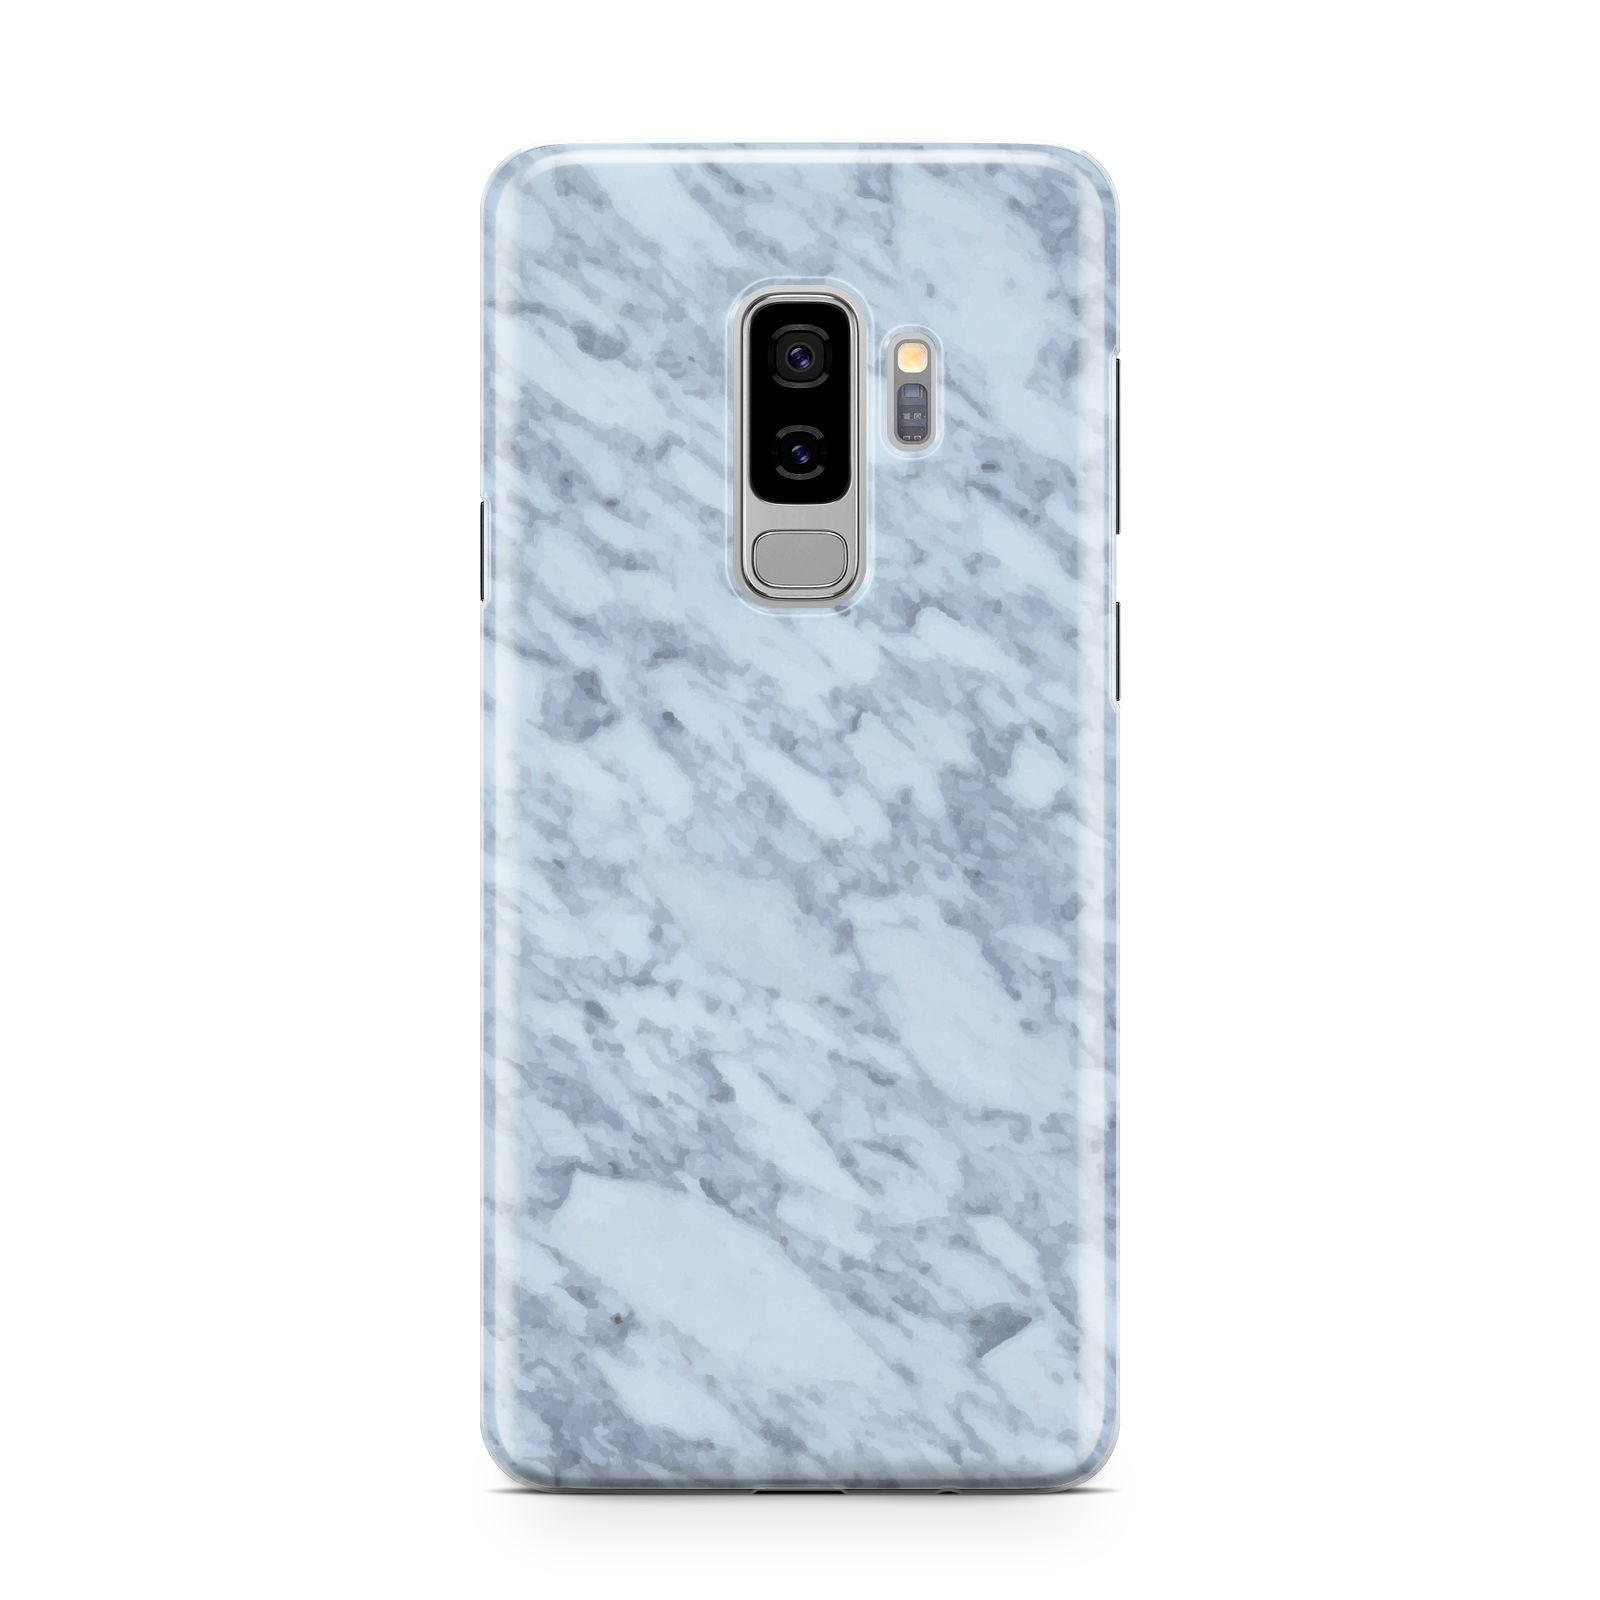 Faux Marble Grey 2 Samsung Galaxy S9 Plus Case on Silver phone